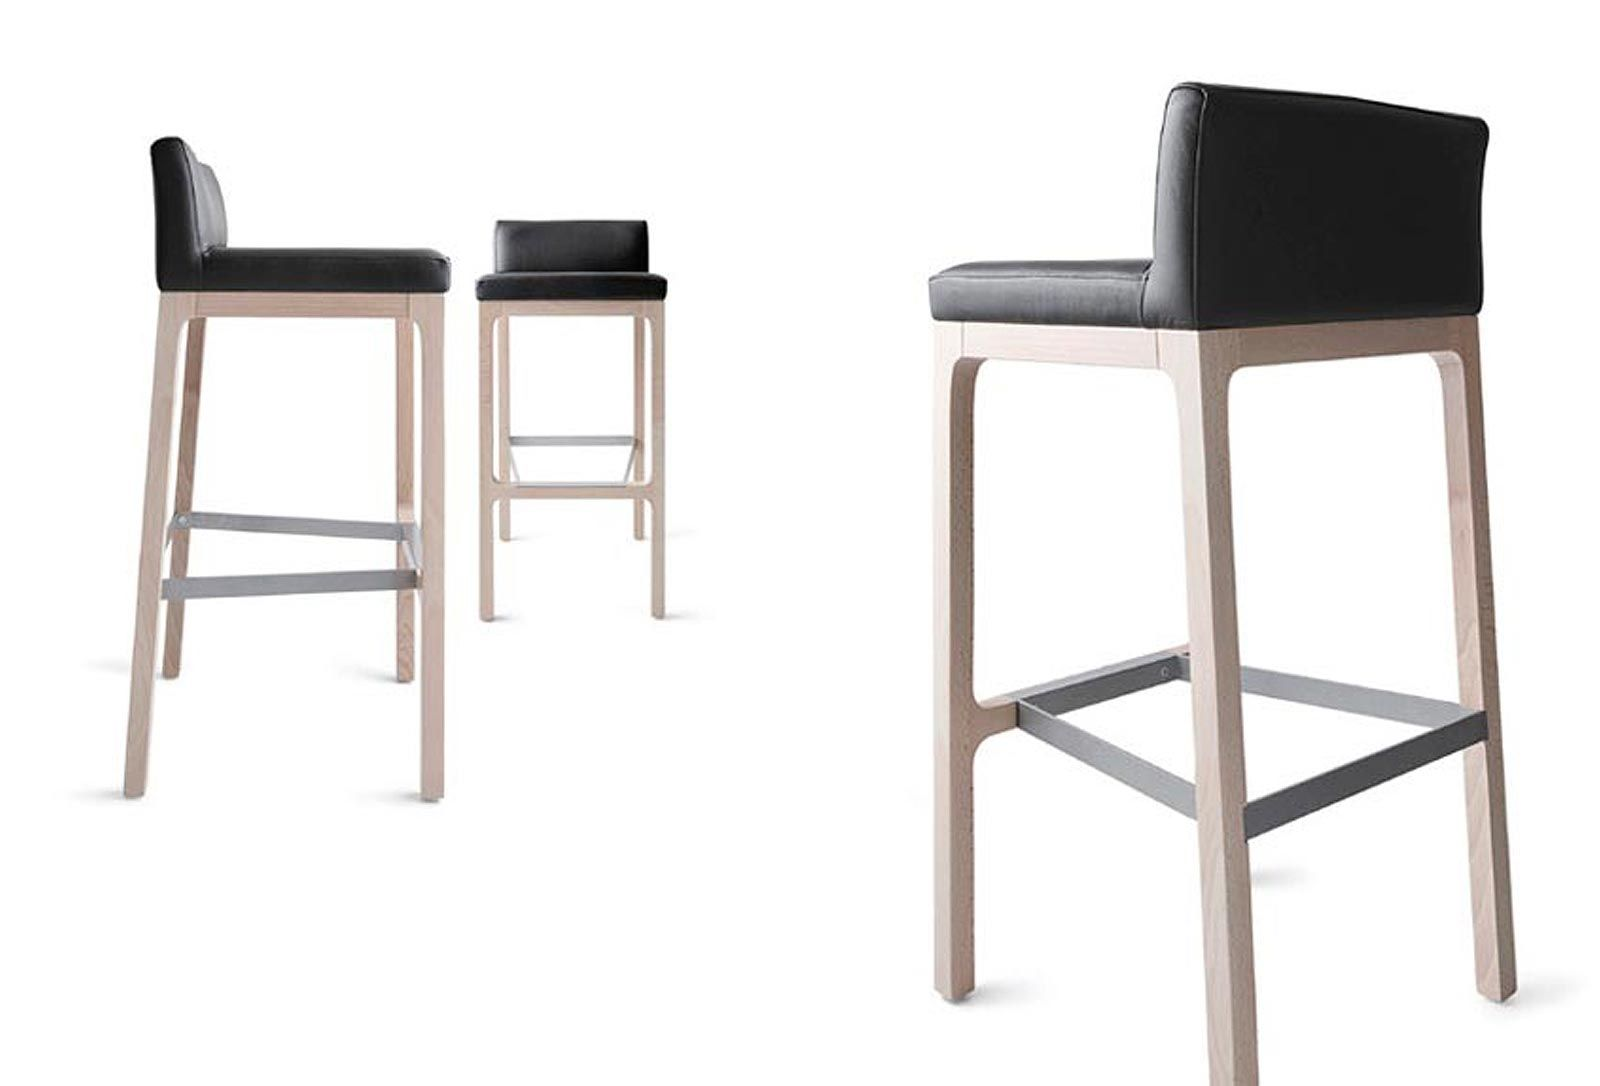 bar stool modern modern italian bar stools designer bar and  - contemporary bar stool solid wood leather fabric flux by